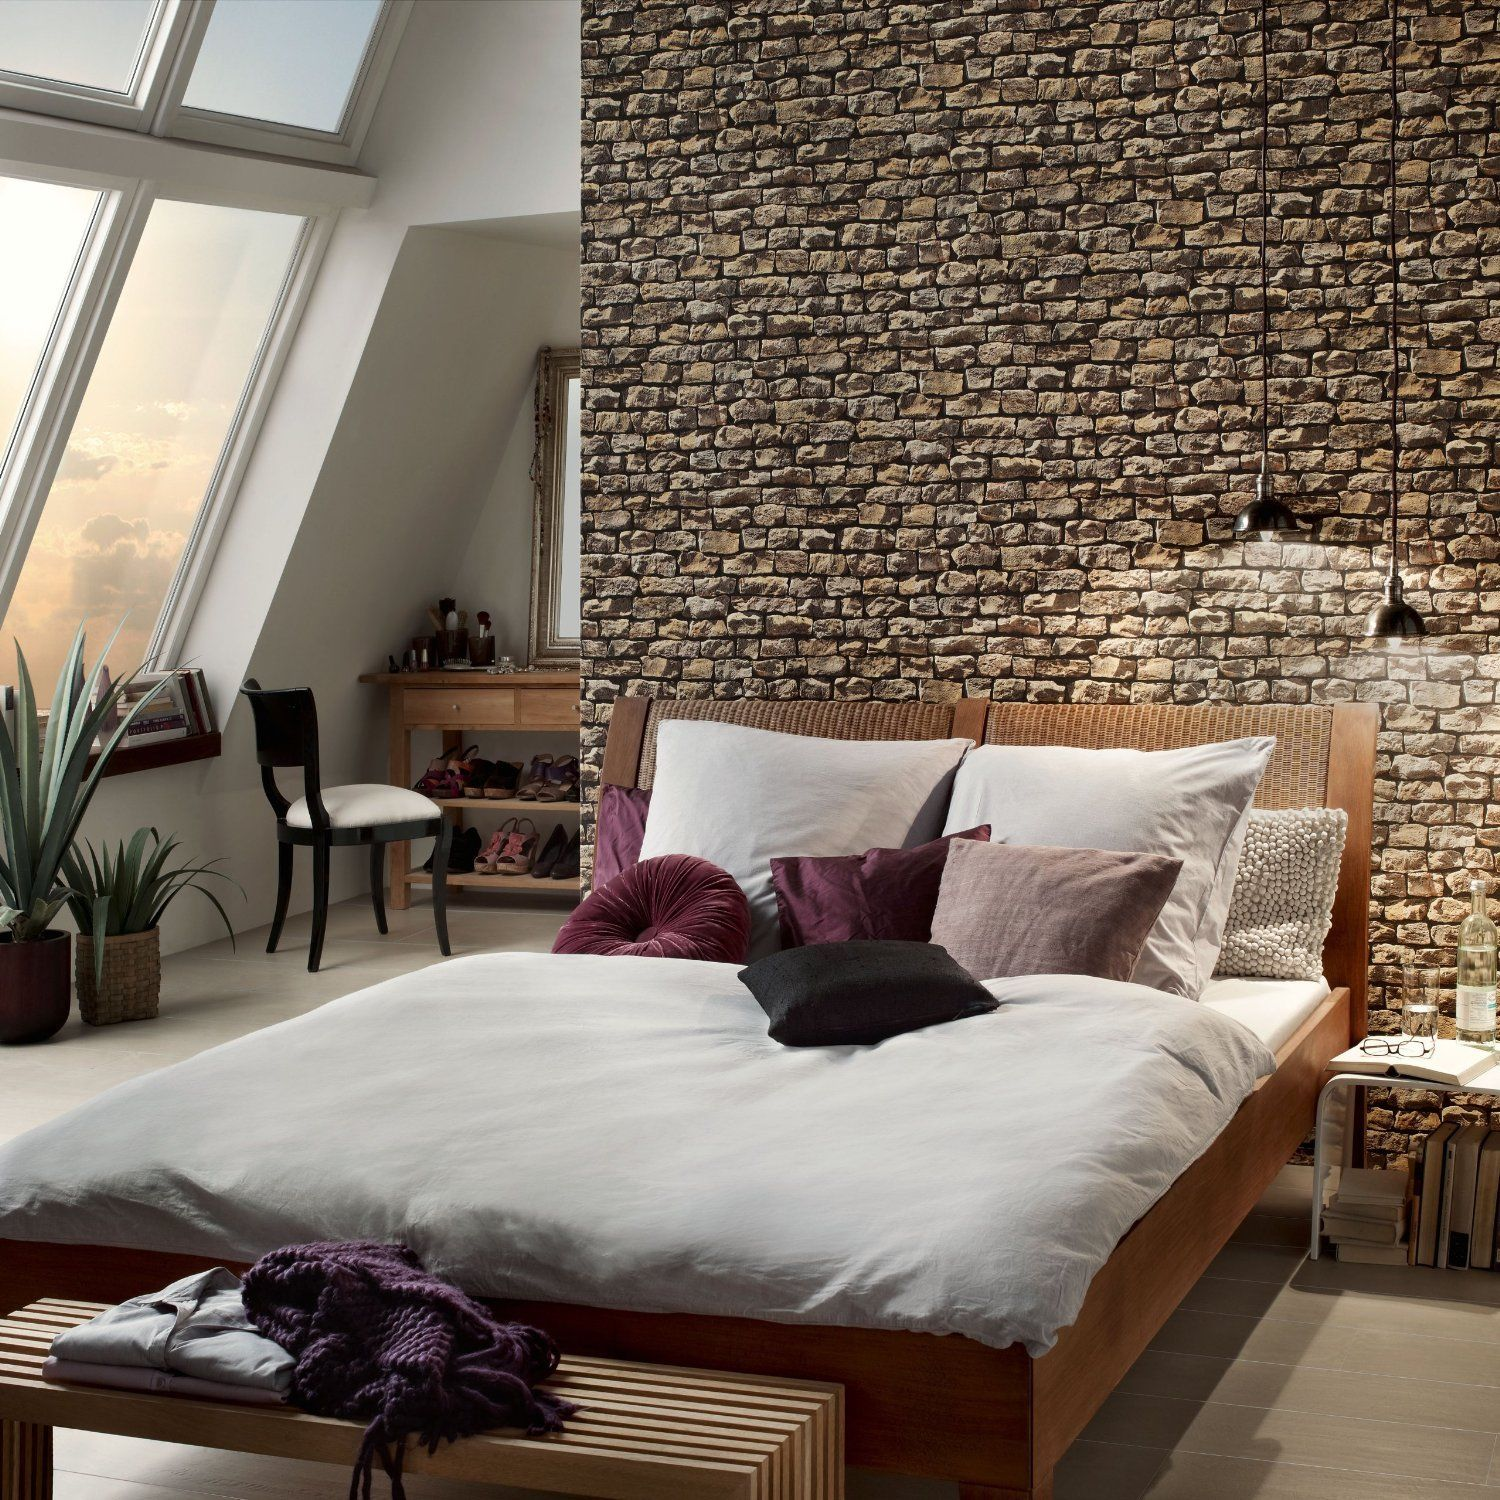 3D Realistic Natural Dry Stone Wall Brick Feature Wallpaper Ascreation